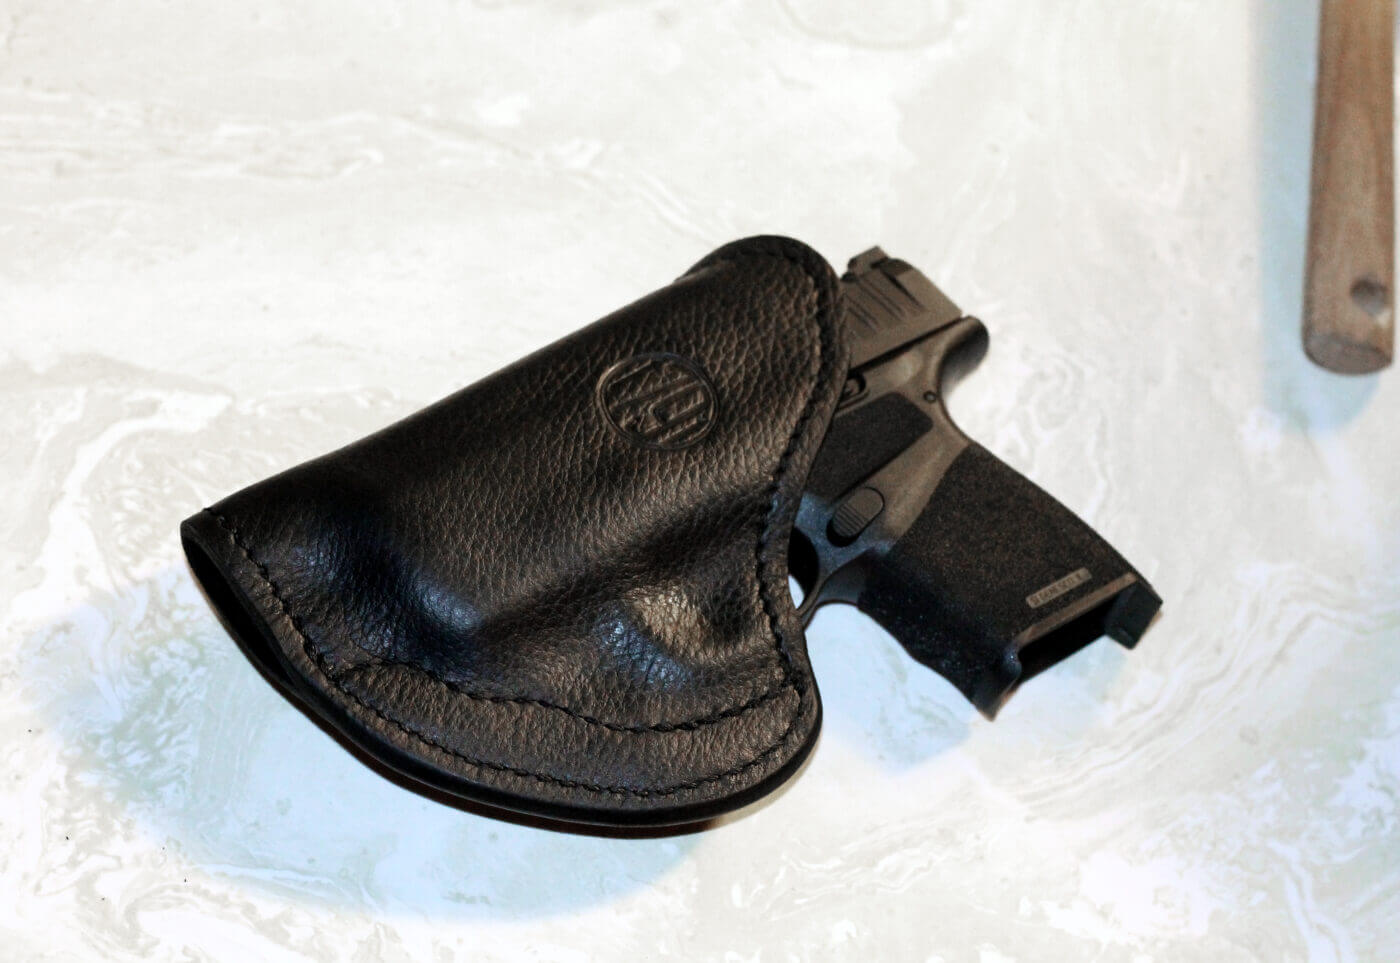 Custom fitting a 1791 Gunleather holster to a Hellcat pistol